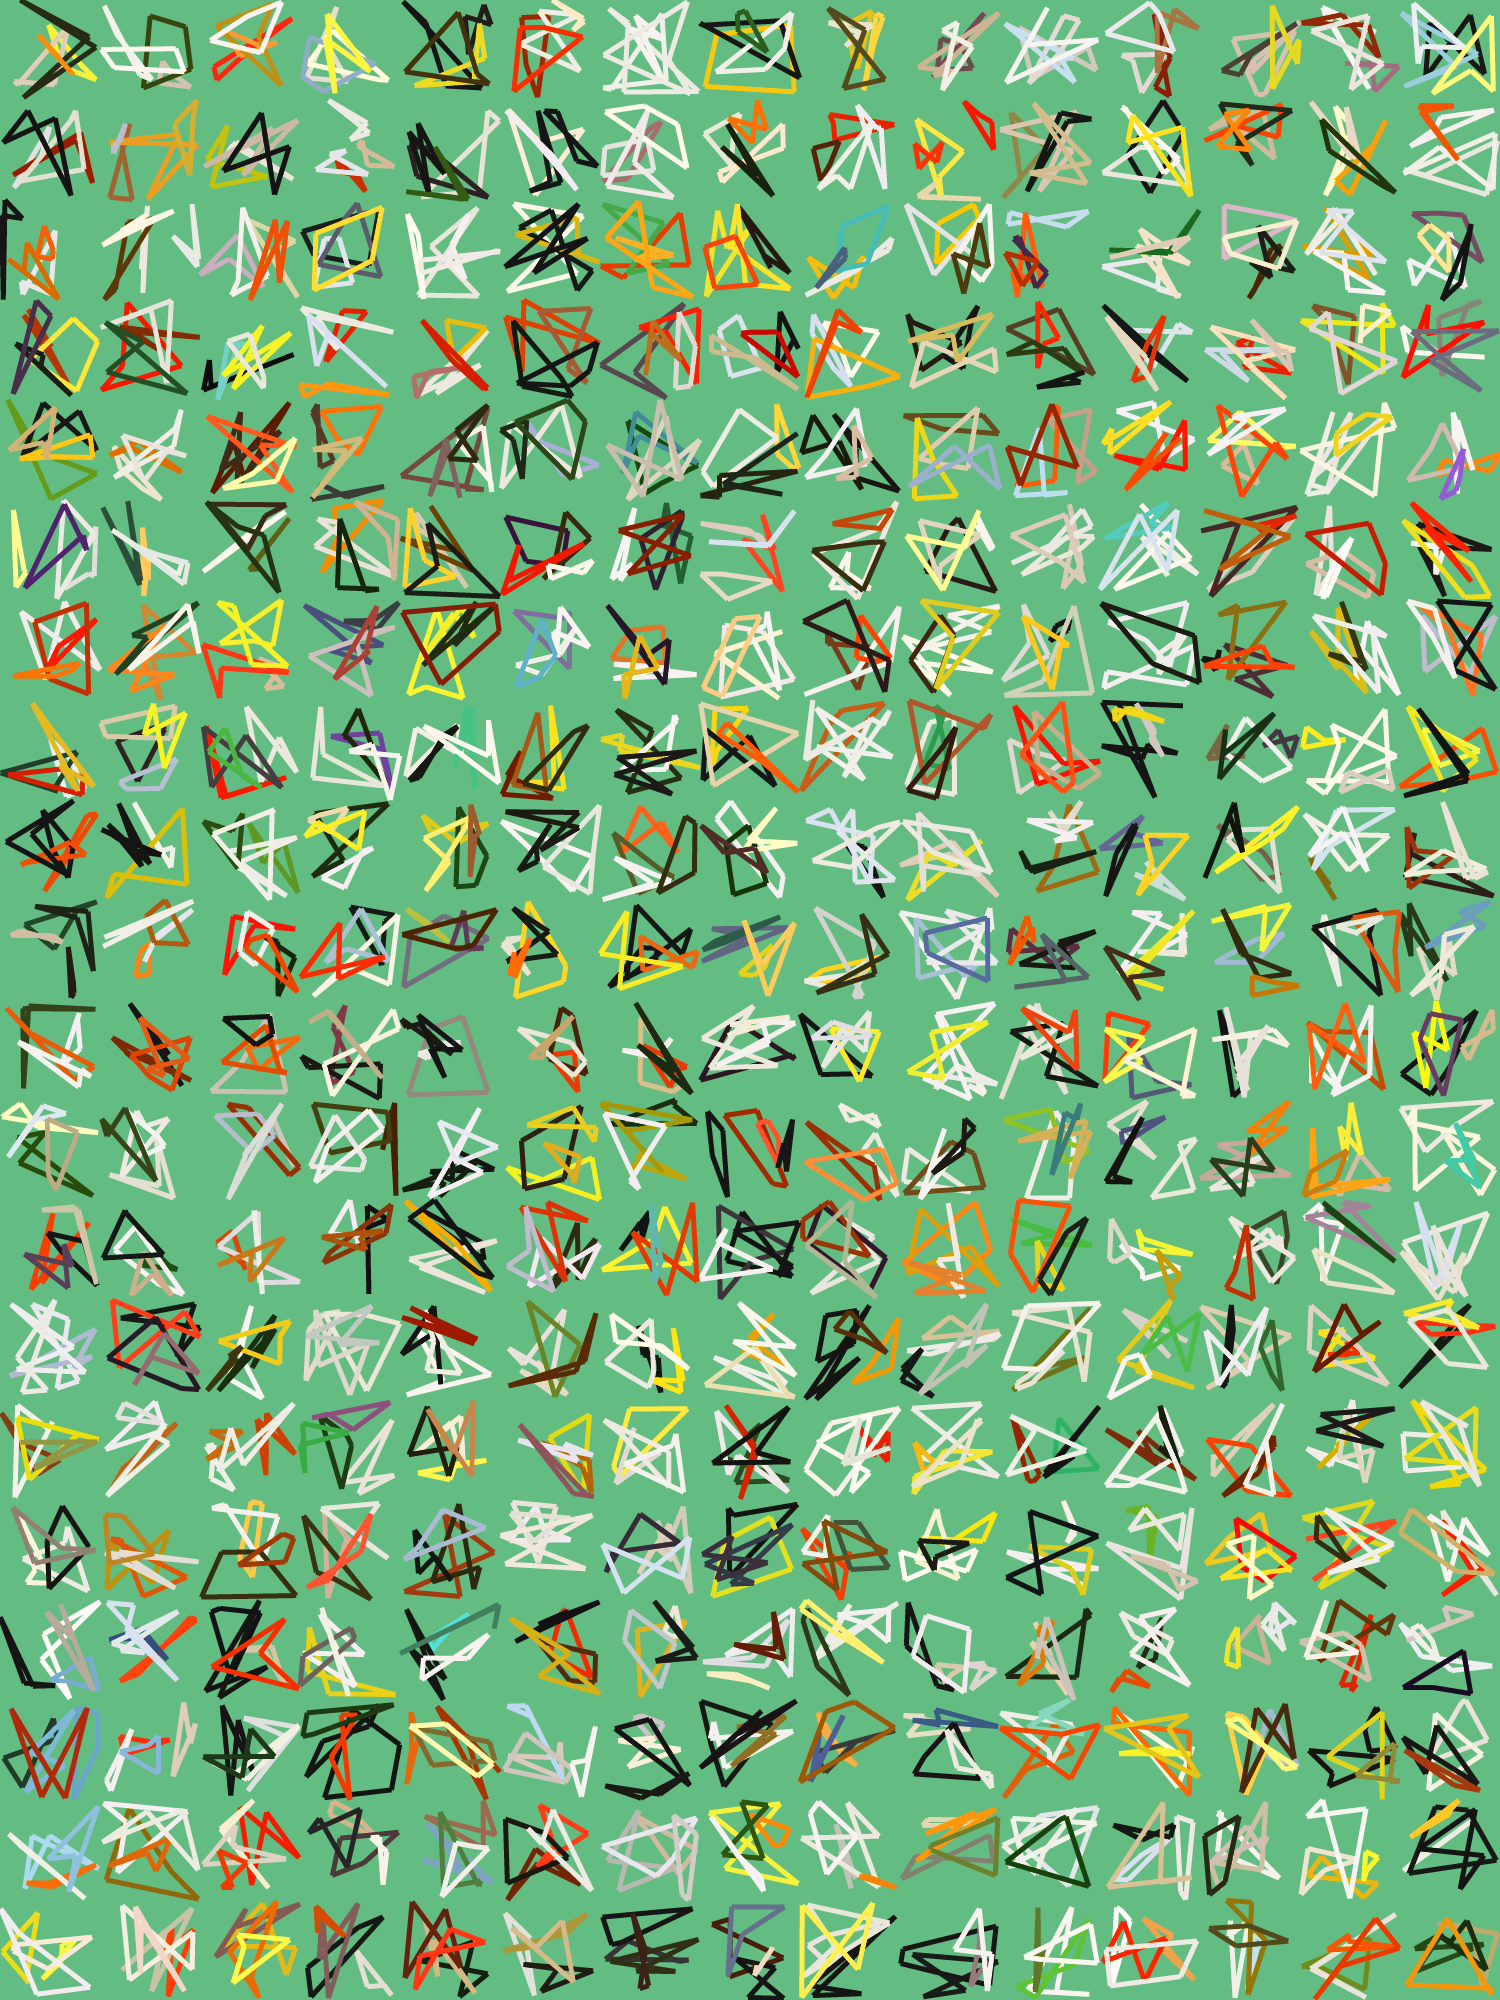 AbstractPattern_2_CalDean.png